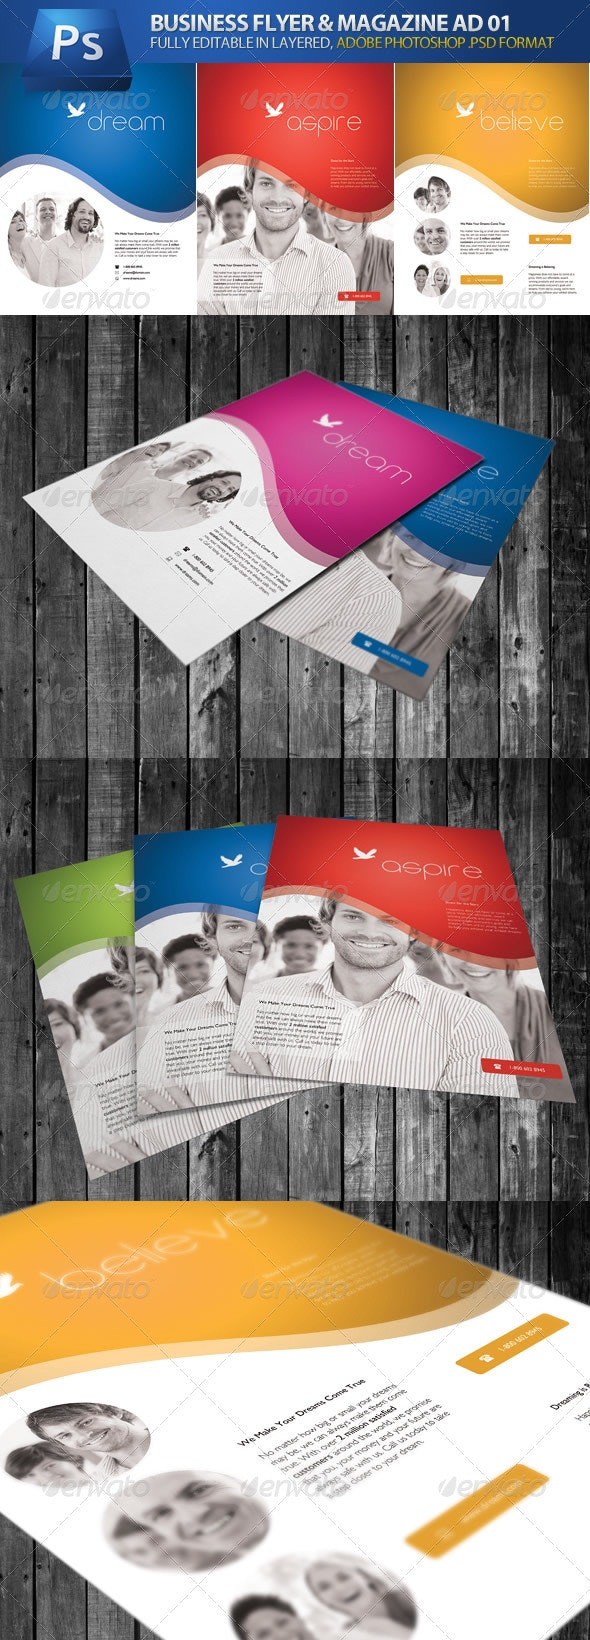 Business Flyer & Magazine Ad 01 - Corporate Flyers